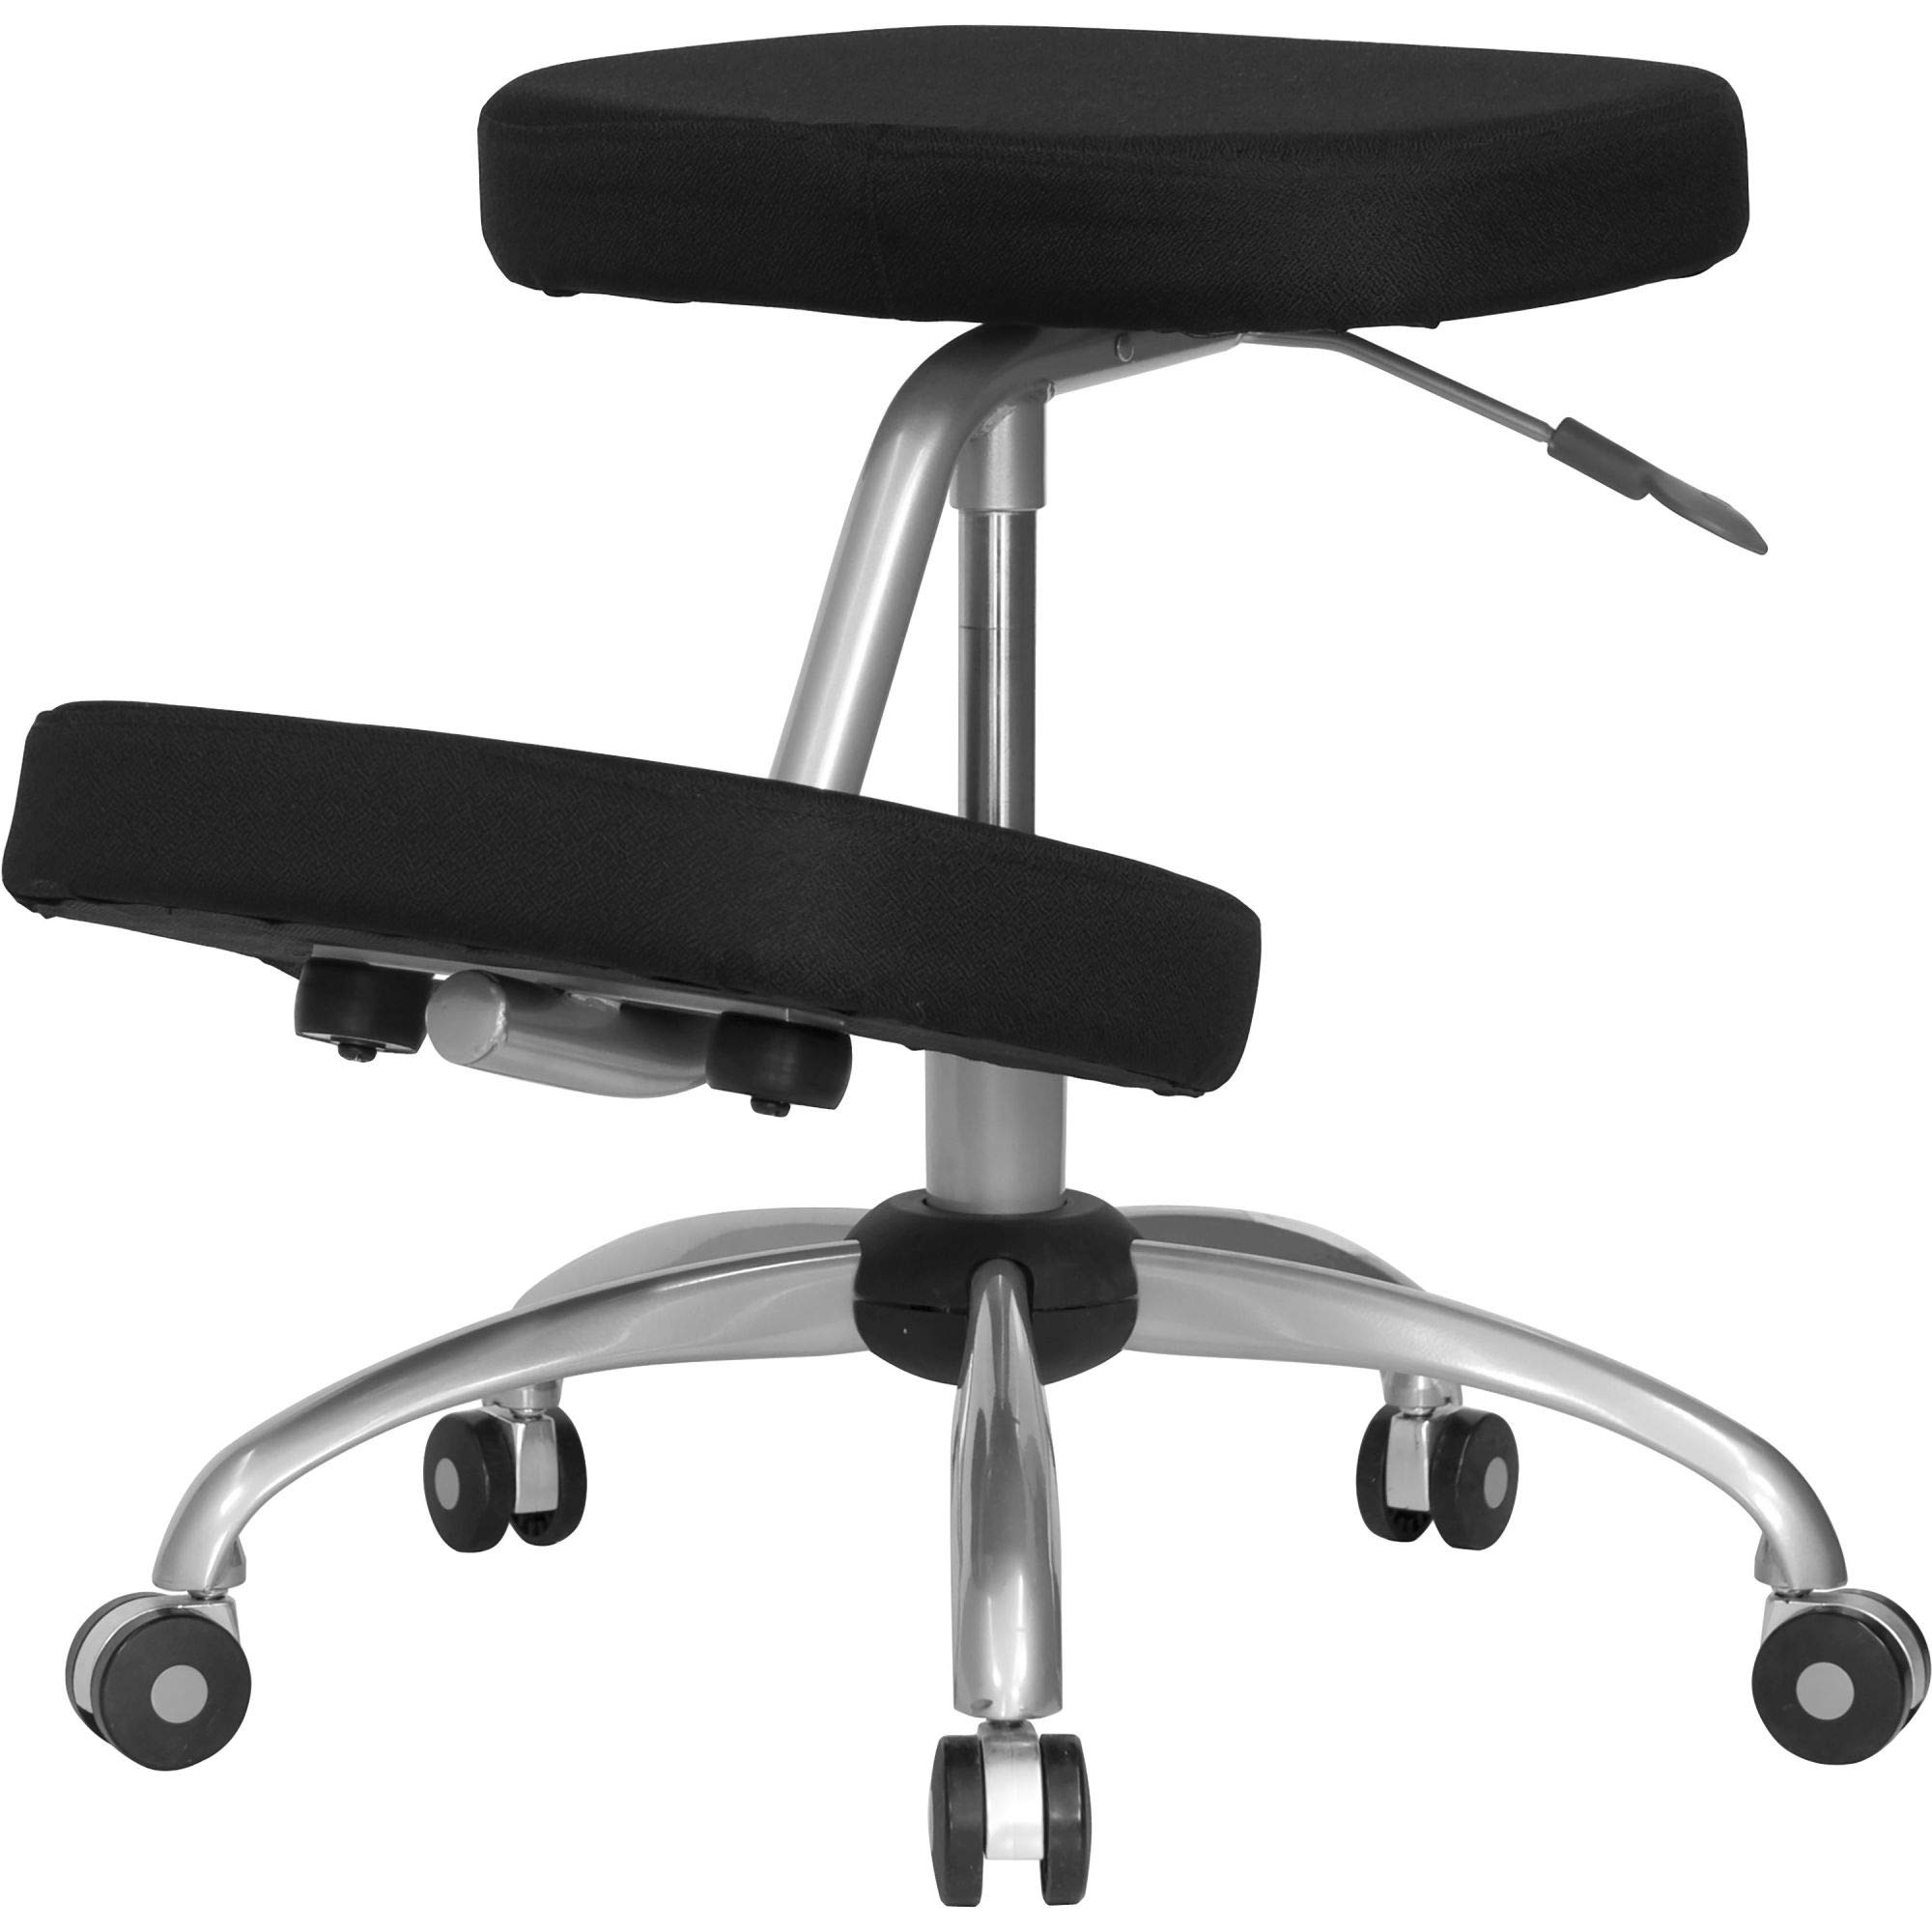 Delacora WL-1425-GG 18 Inch Wide Fabric Kneeling Chair with Pneumatic Seat Height Adjustment